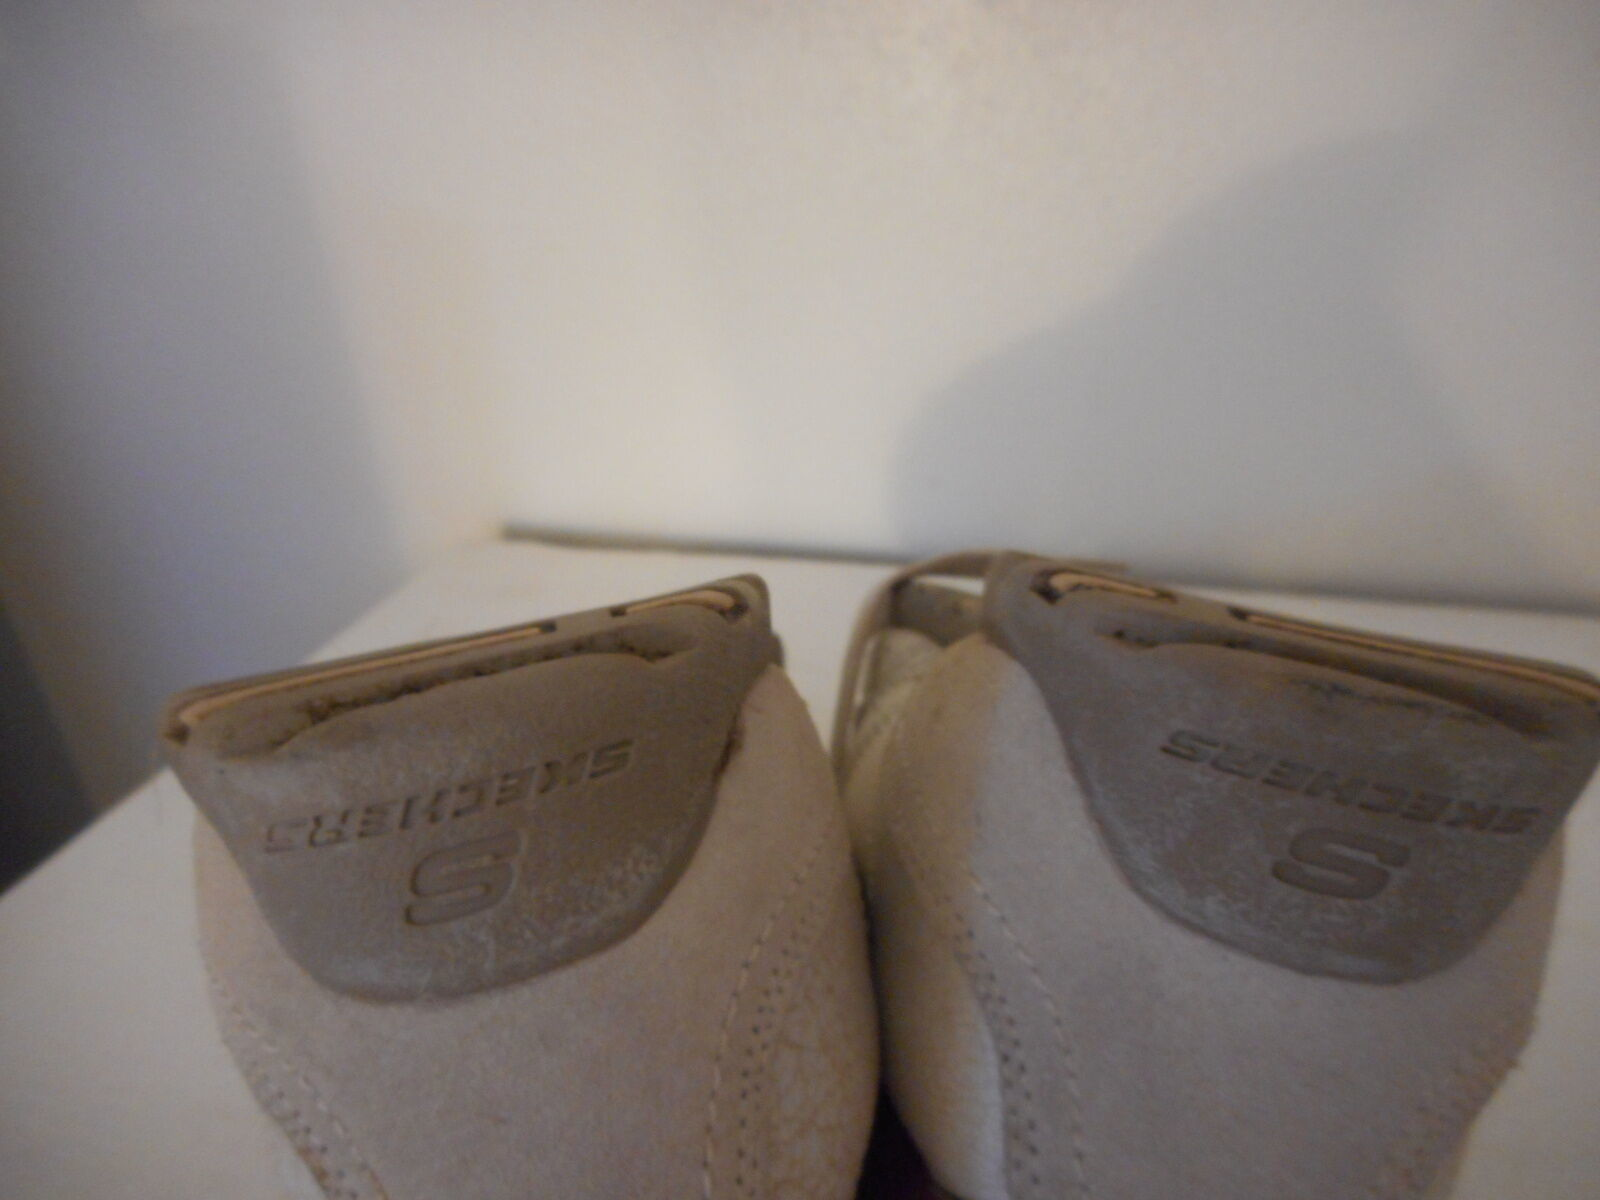 Skechers Sz 9 Womens Beige Athletic Shoes Sneakers Leather upper lace up image 8